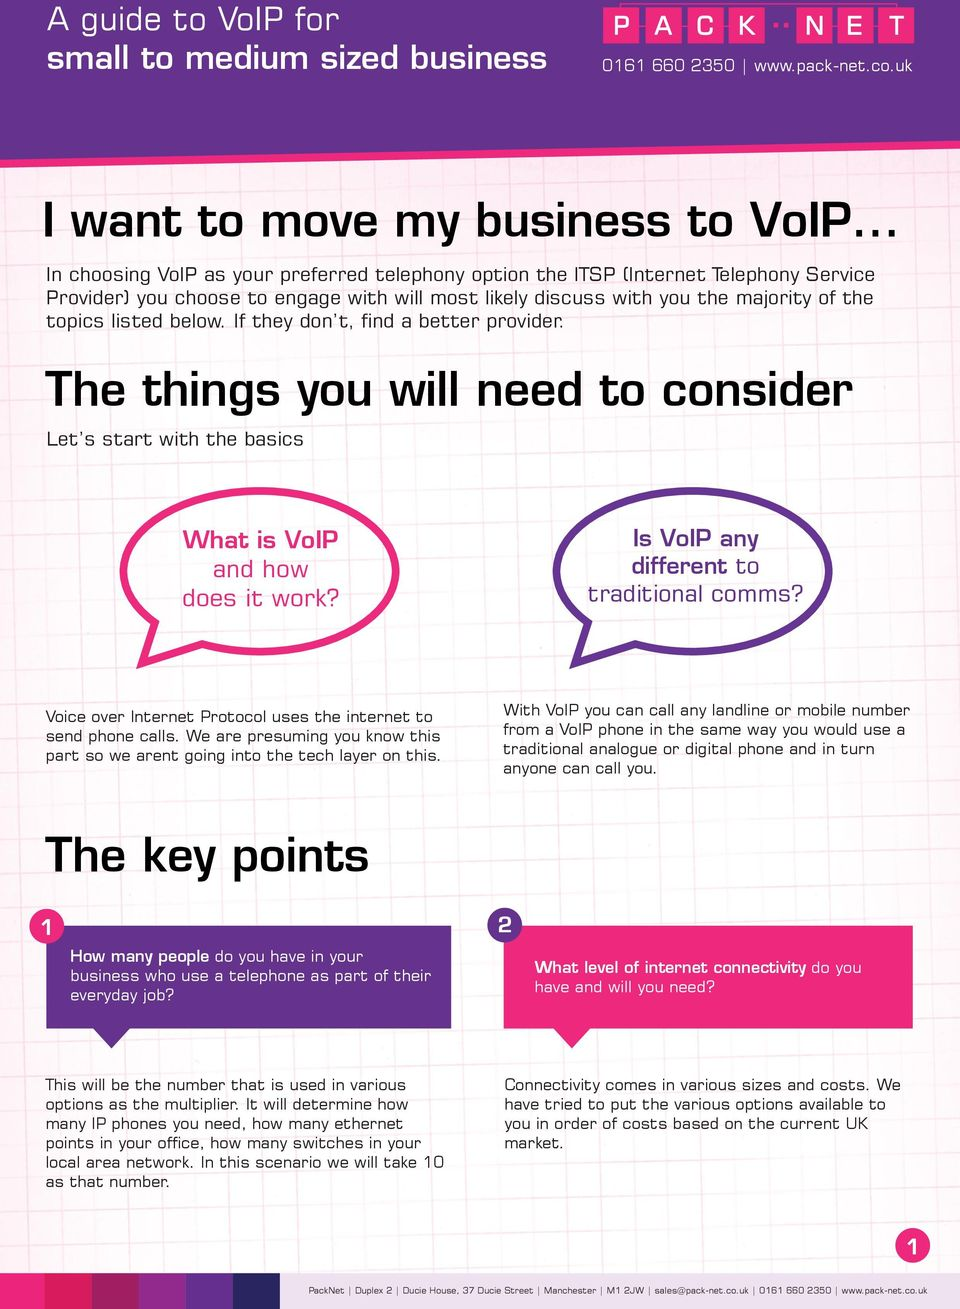 If they don t, find a better provider. The things you will need to consider Let s start with the basics What is VoIP and how does it work? Is VoIP any different to traditional comms?